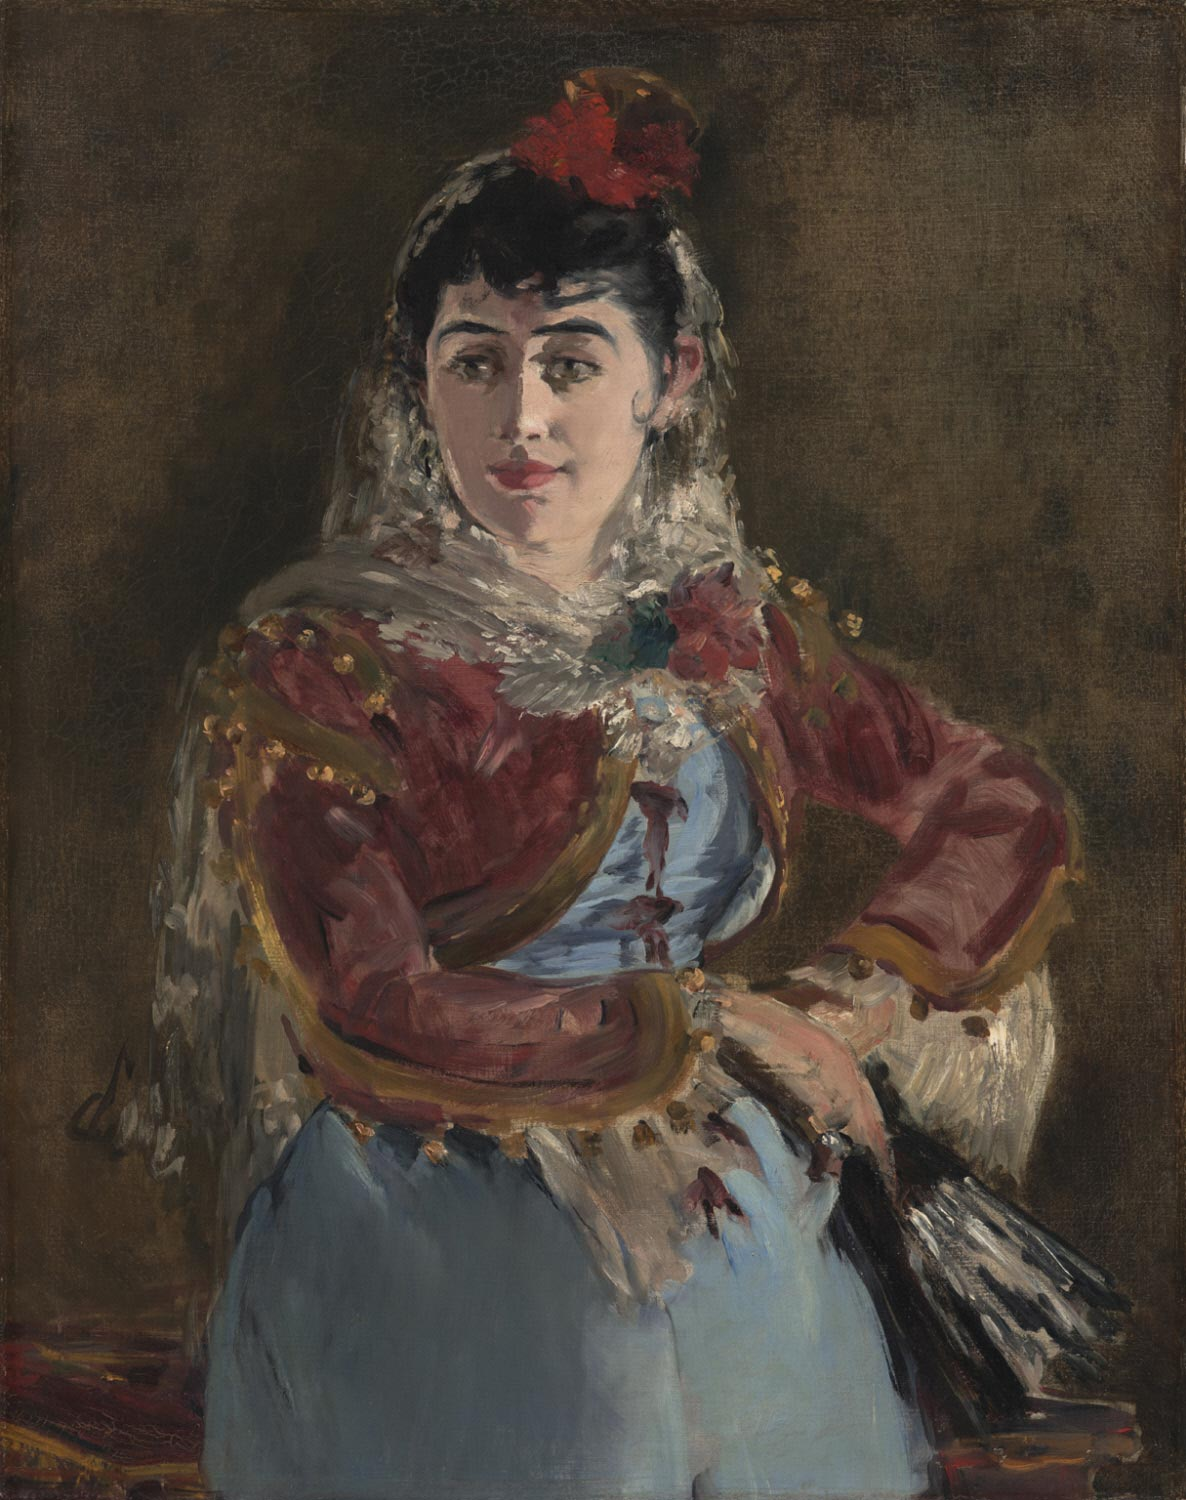 Portrait of Émilie Ambre as Carmen